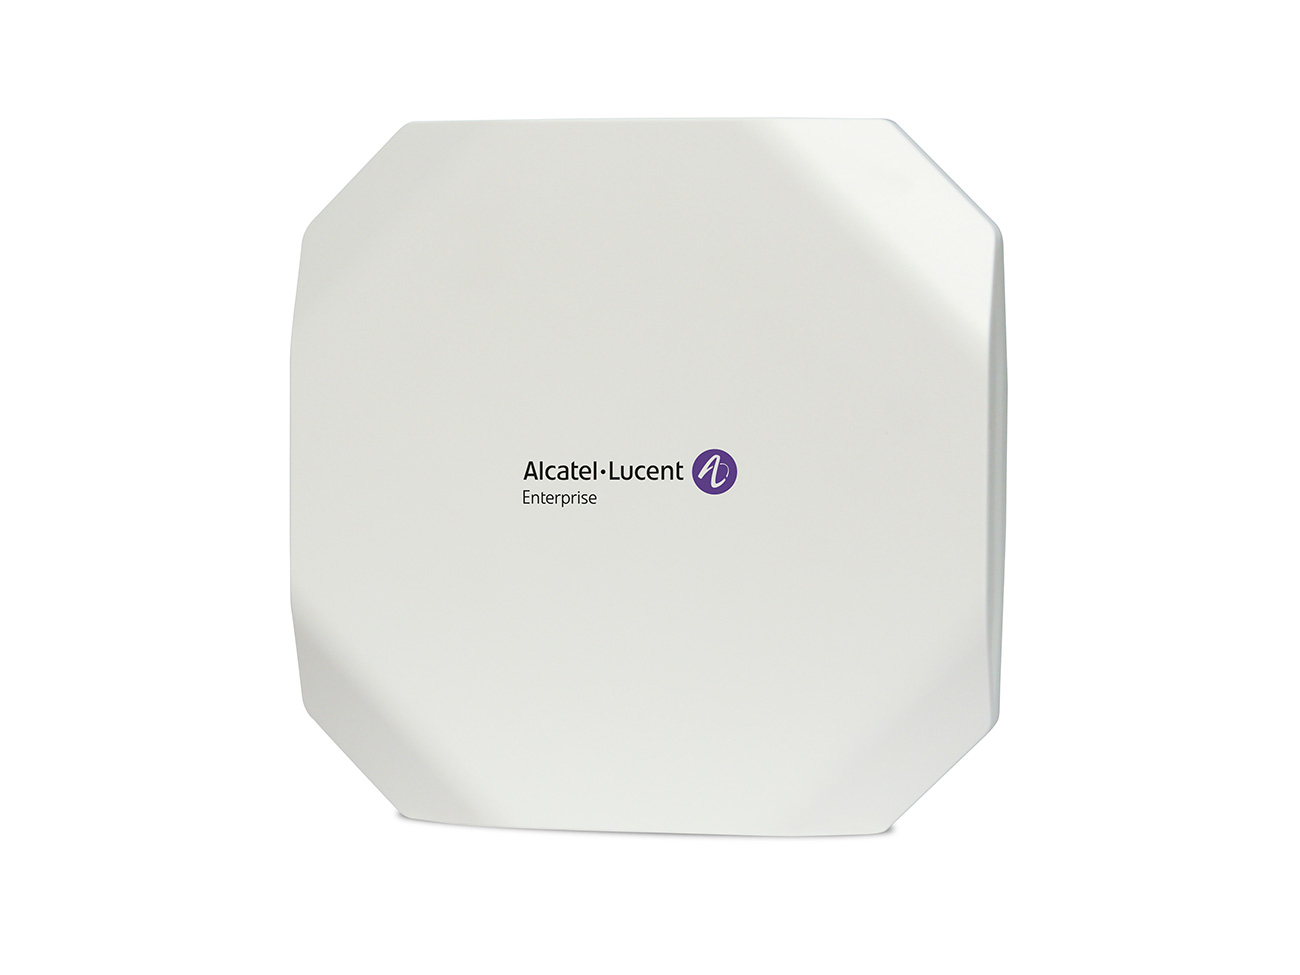 Alcatel-Lucent Enterprise представила новые точки доступа Wi-Fi 6